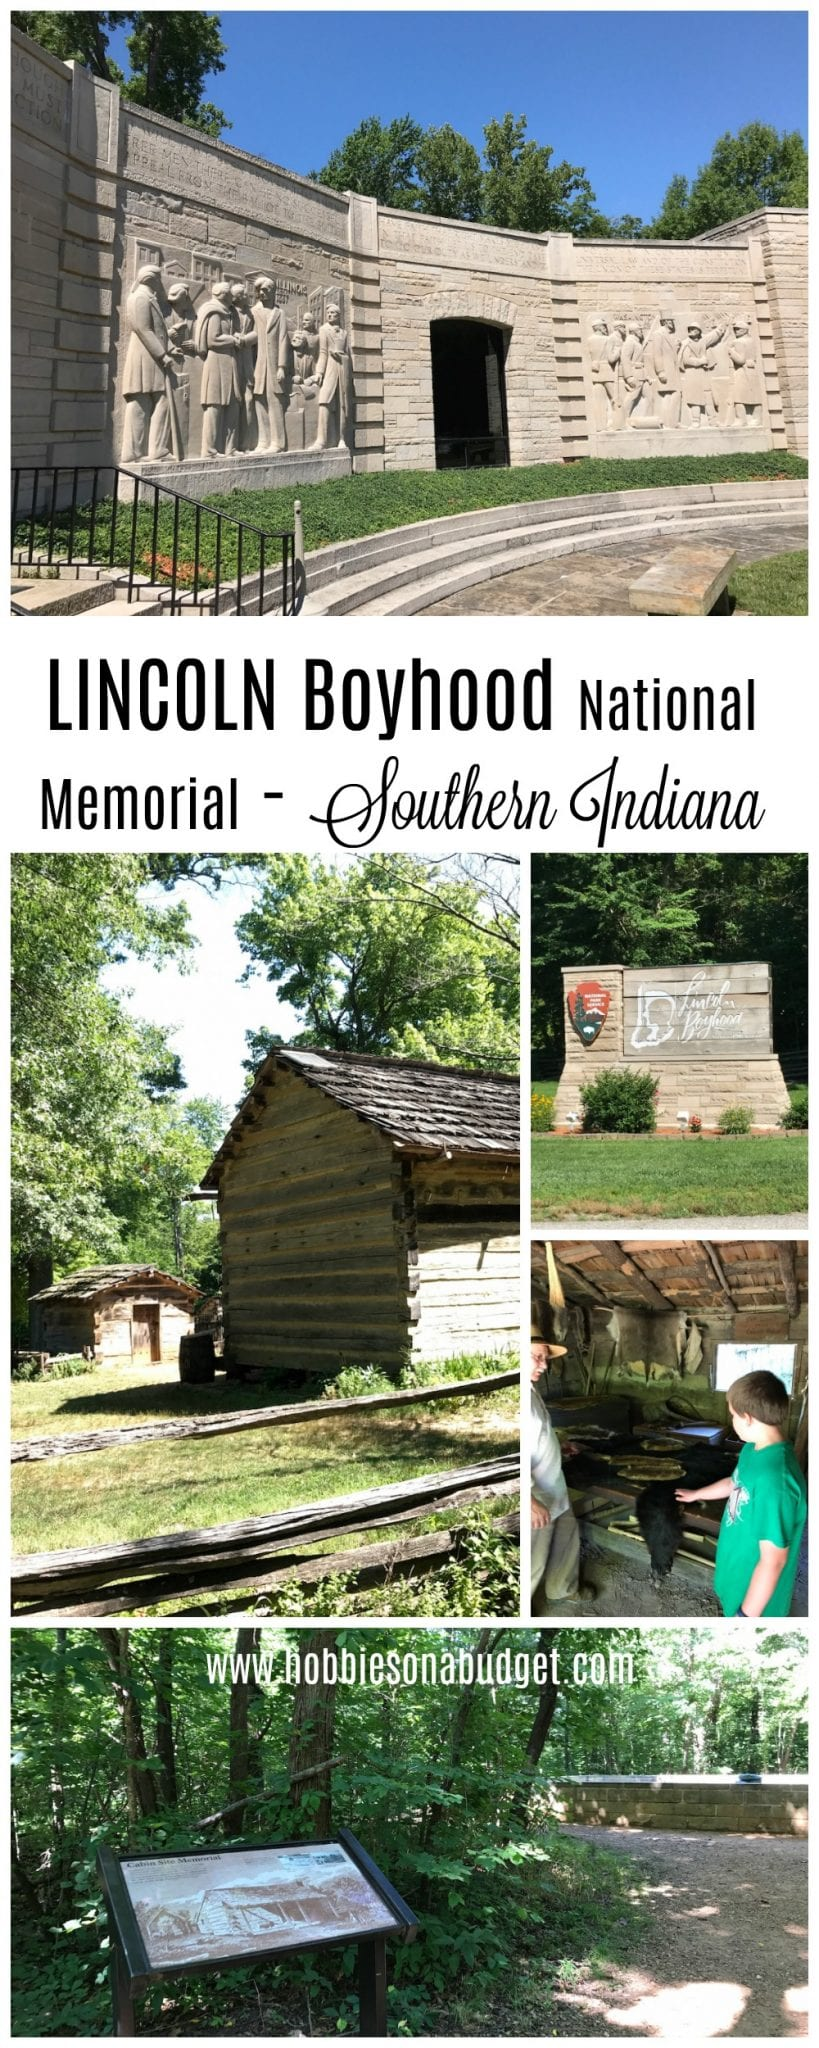 Lincoln Boyhood National Memorial - Southern Indiana